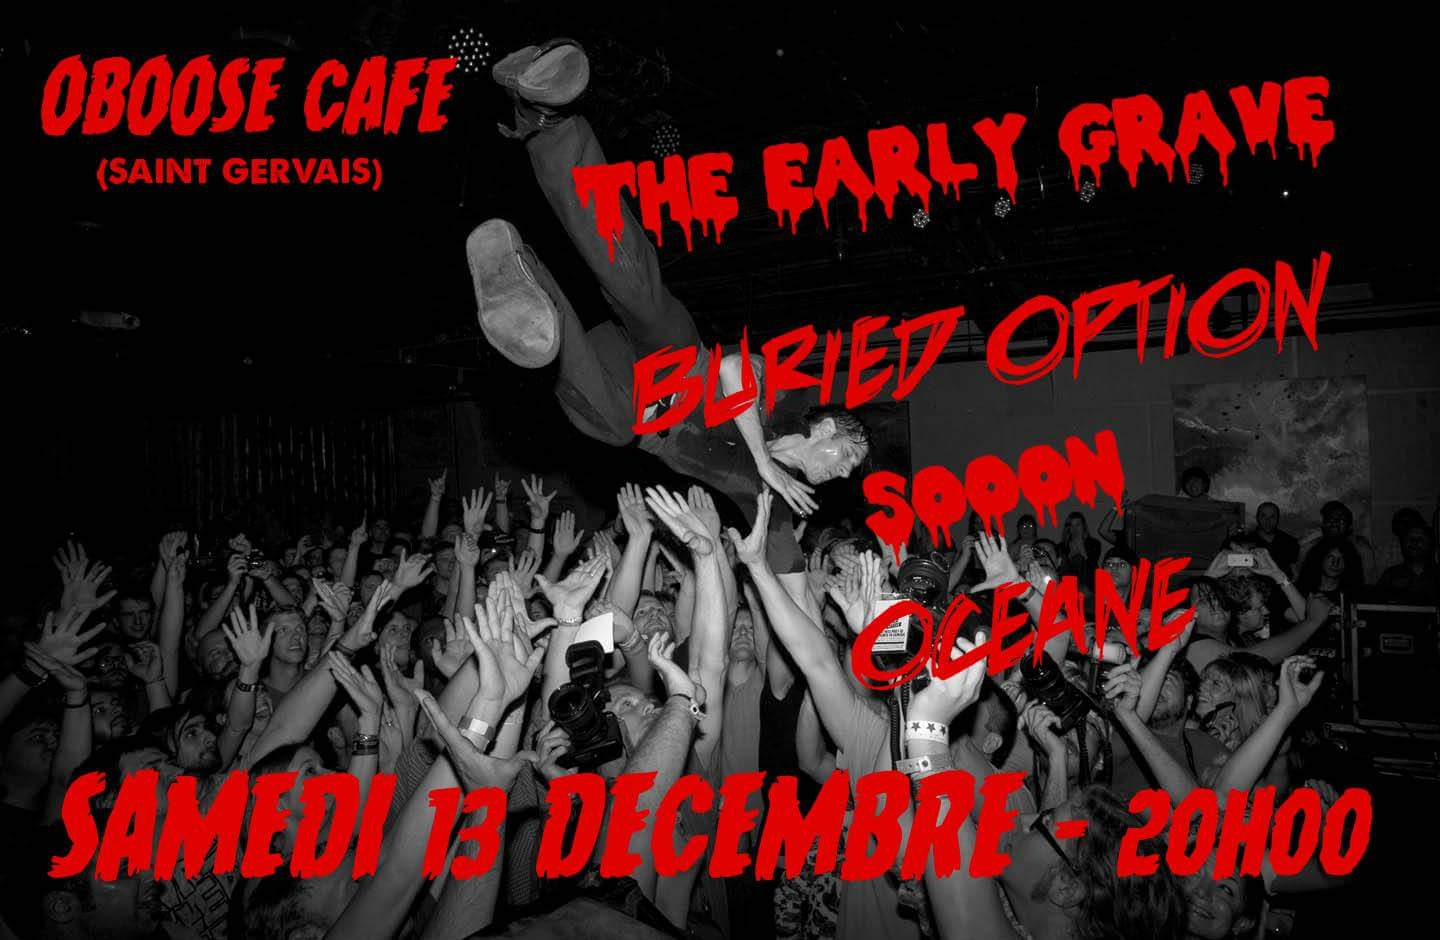 "13 décembre 2014 Oceane, Soon, Buried Option, The Early Grave à Saint Gervais ""Oboose Café"""